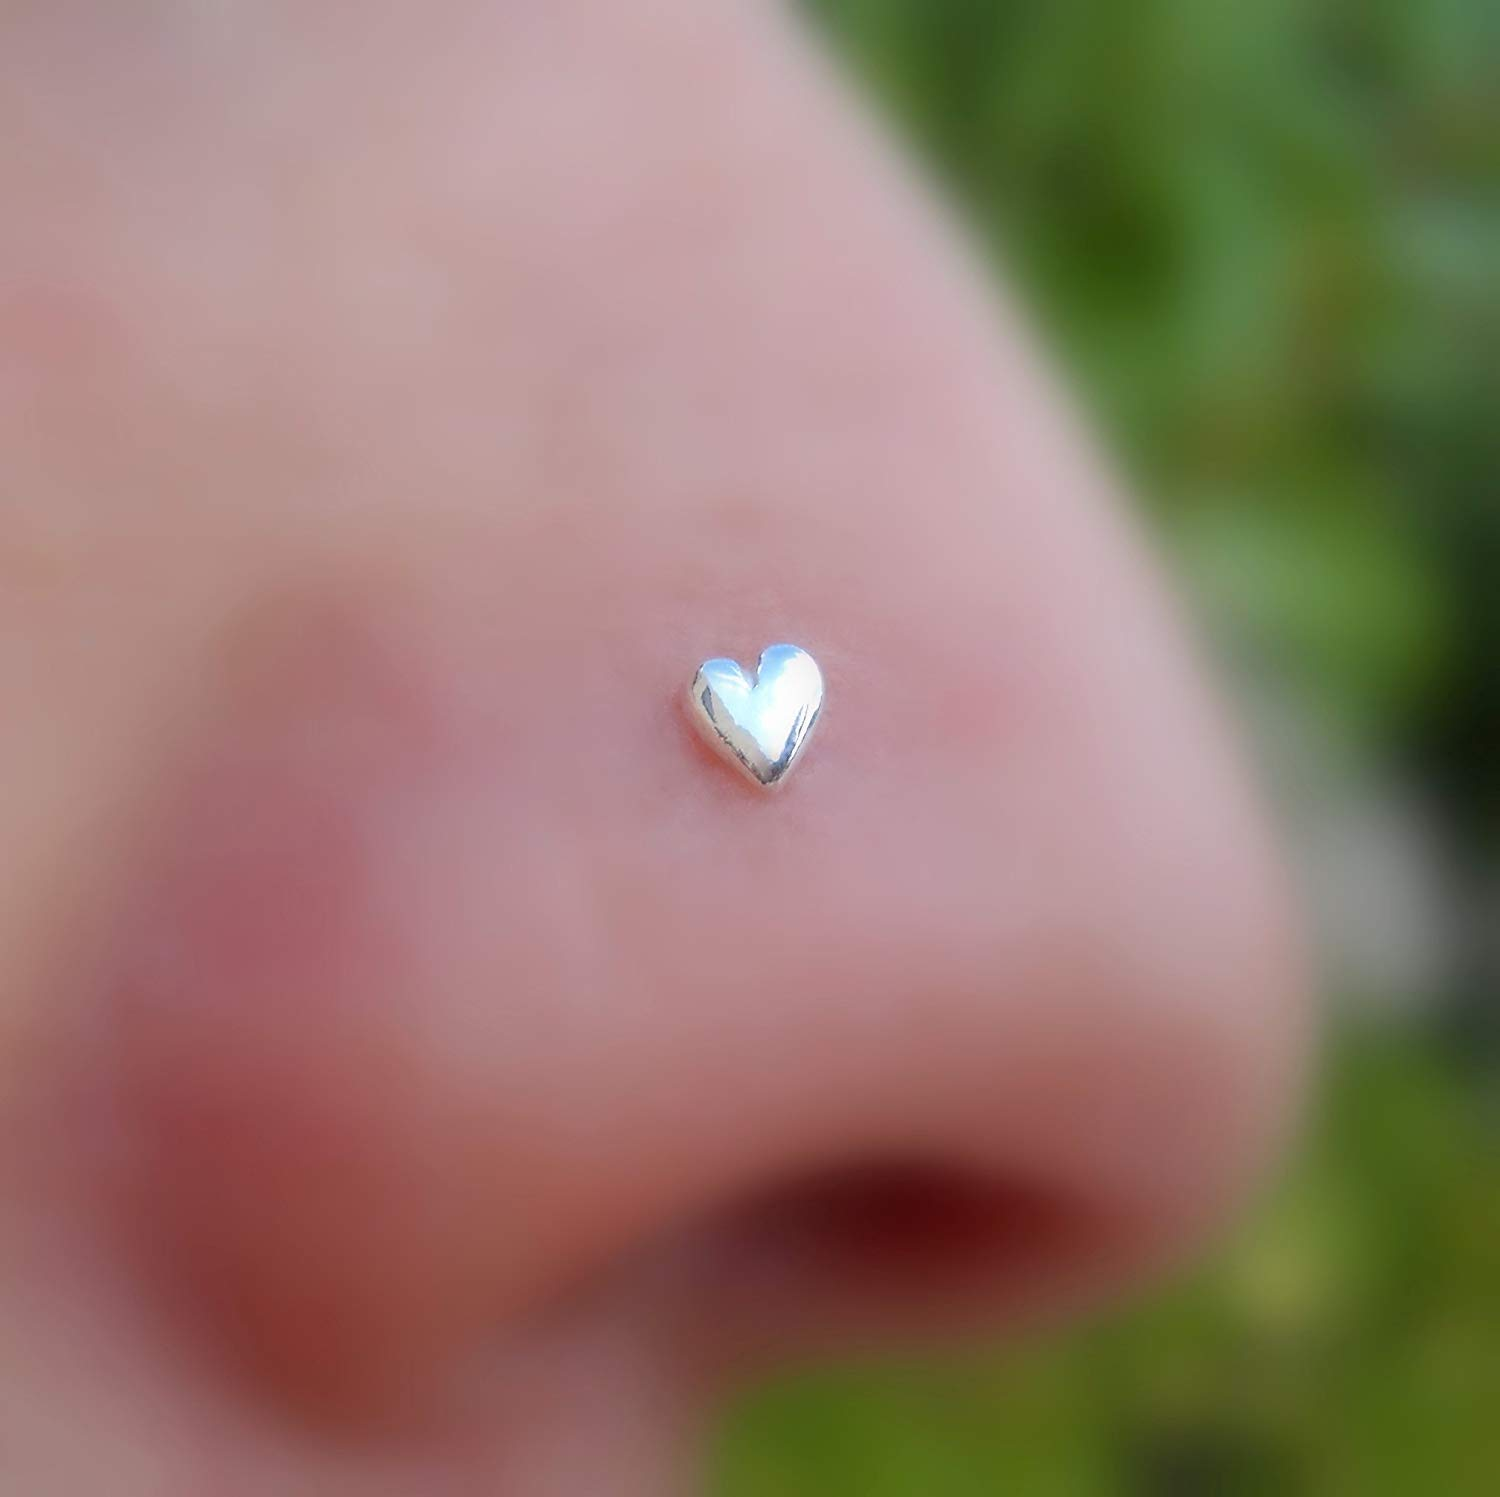 Nose Ring - Nose Stud - Cartilage Tragus Earring - Sterling Silver - Solid Heart - 20G to 16G Post